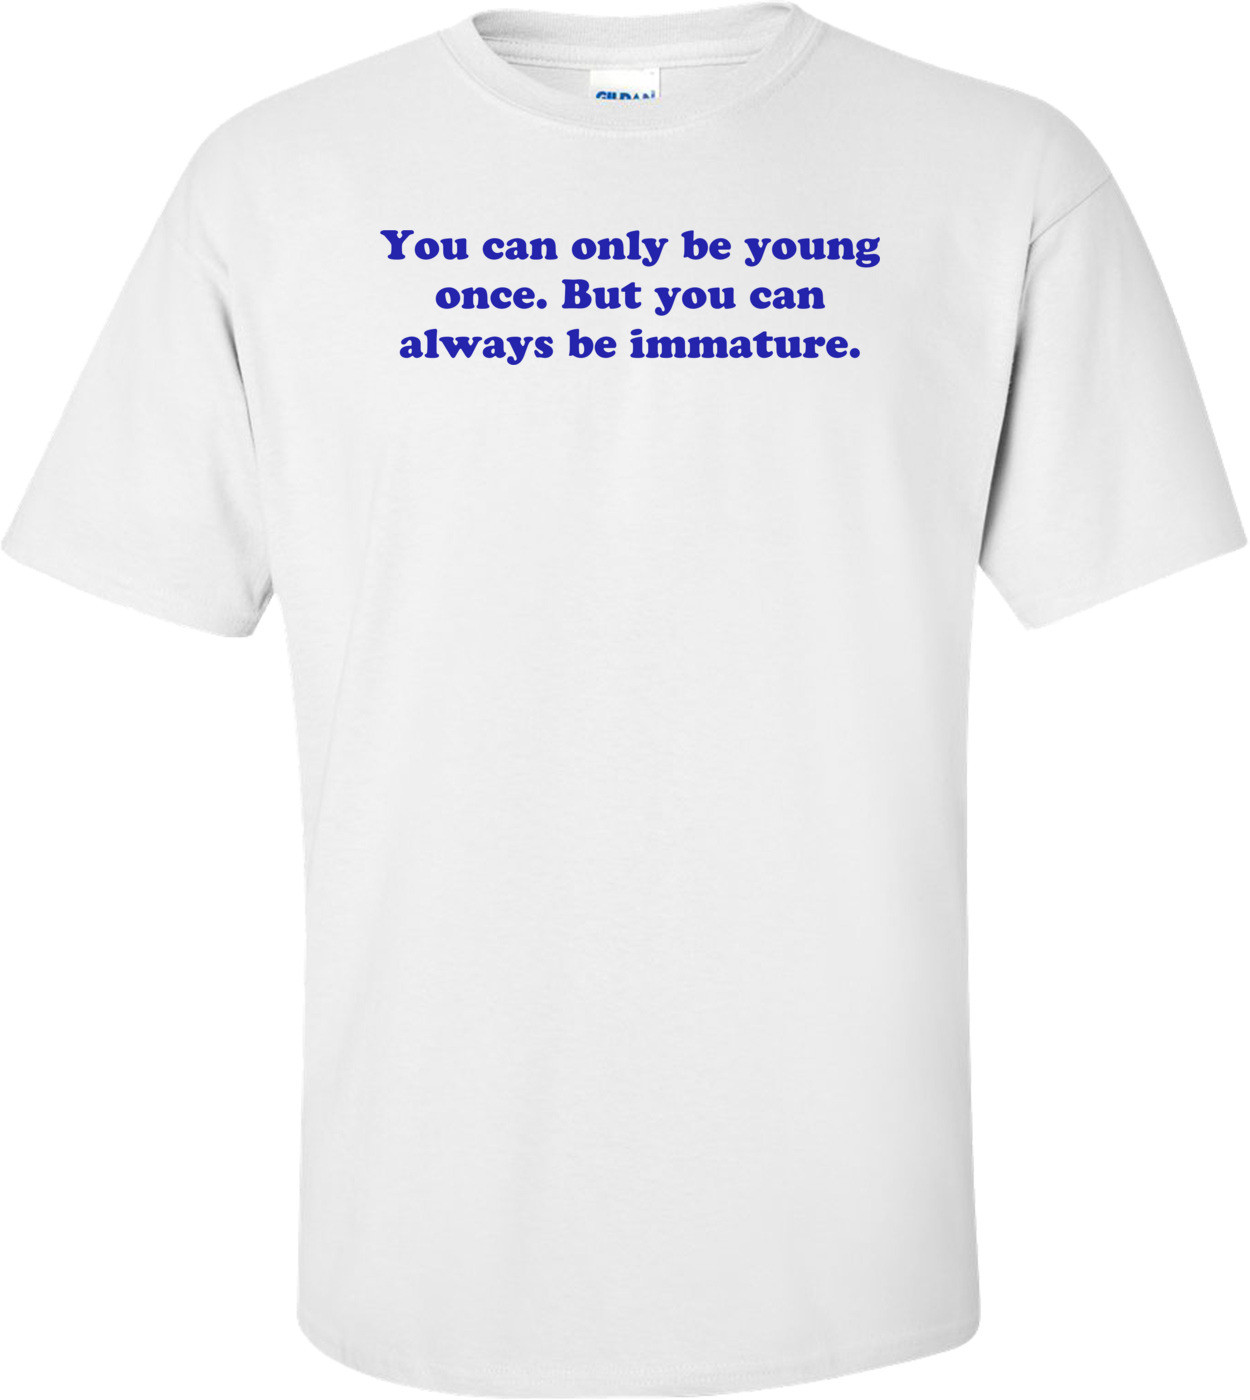 You can only be young once. But you can always be immature. Shirt